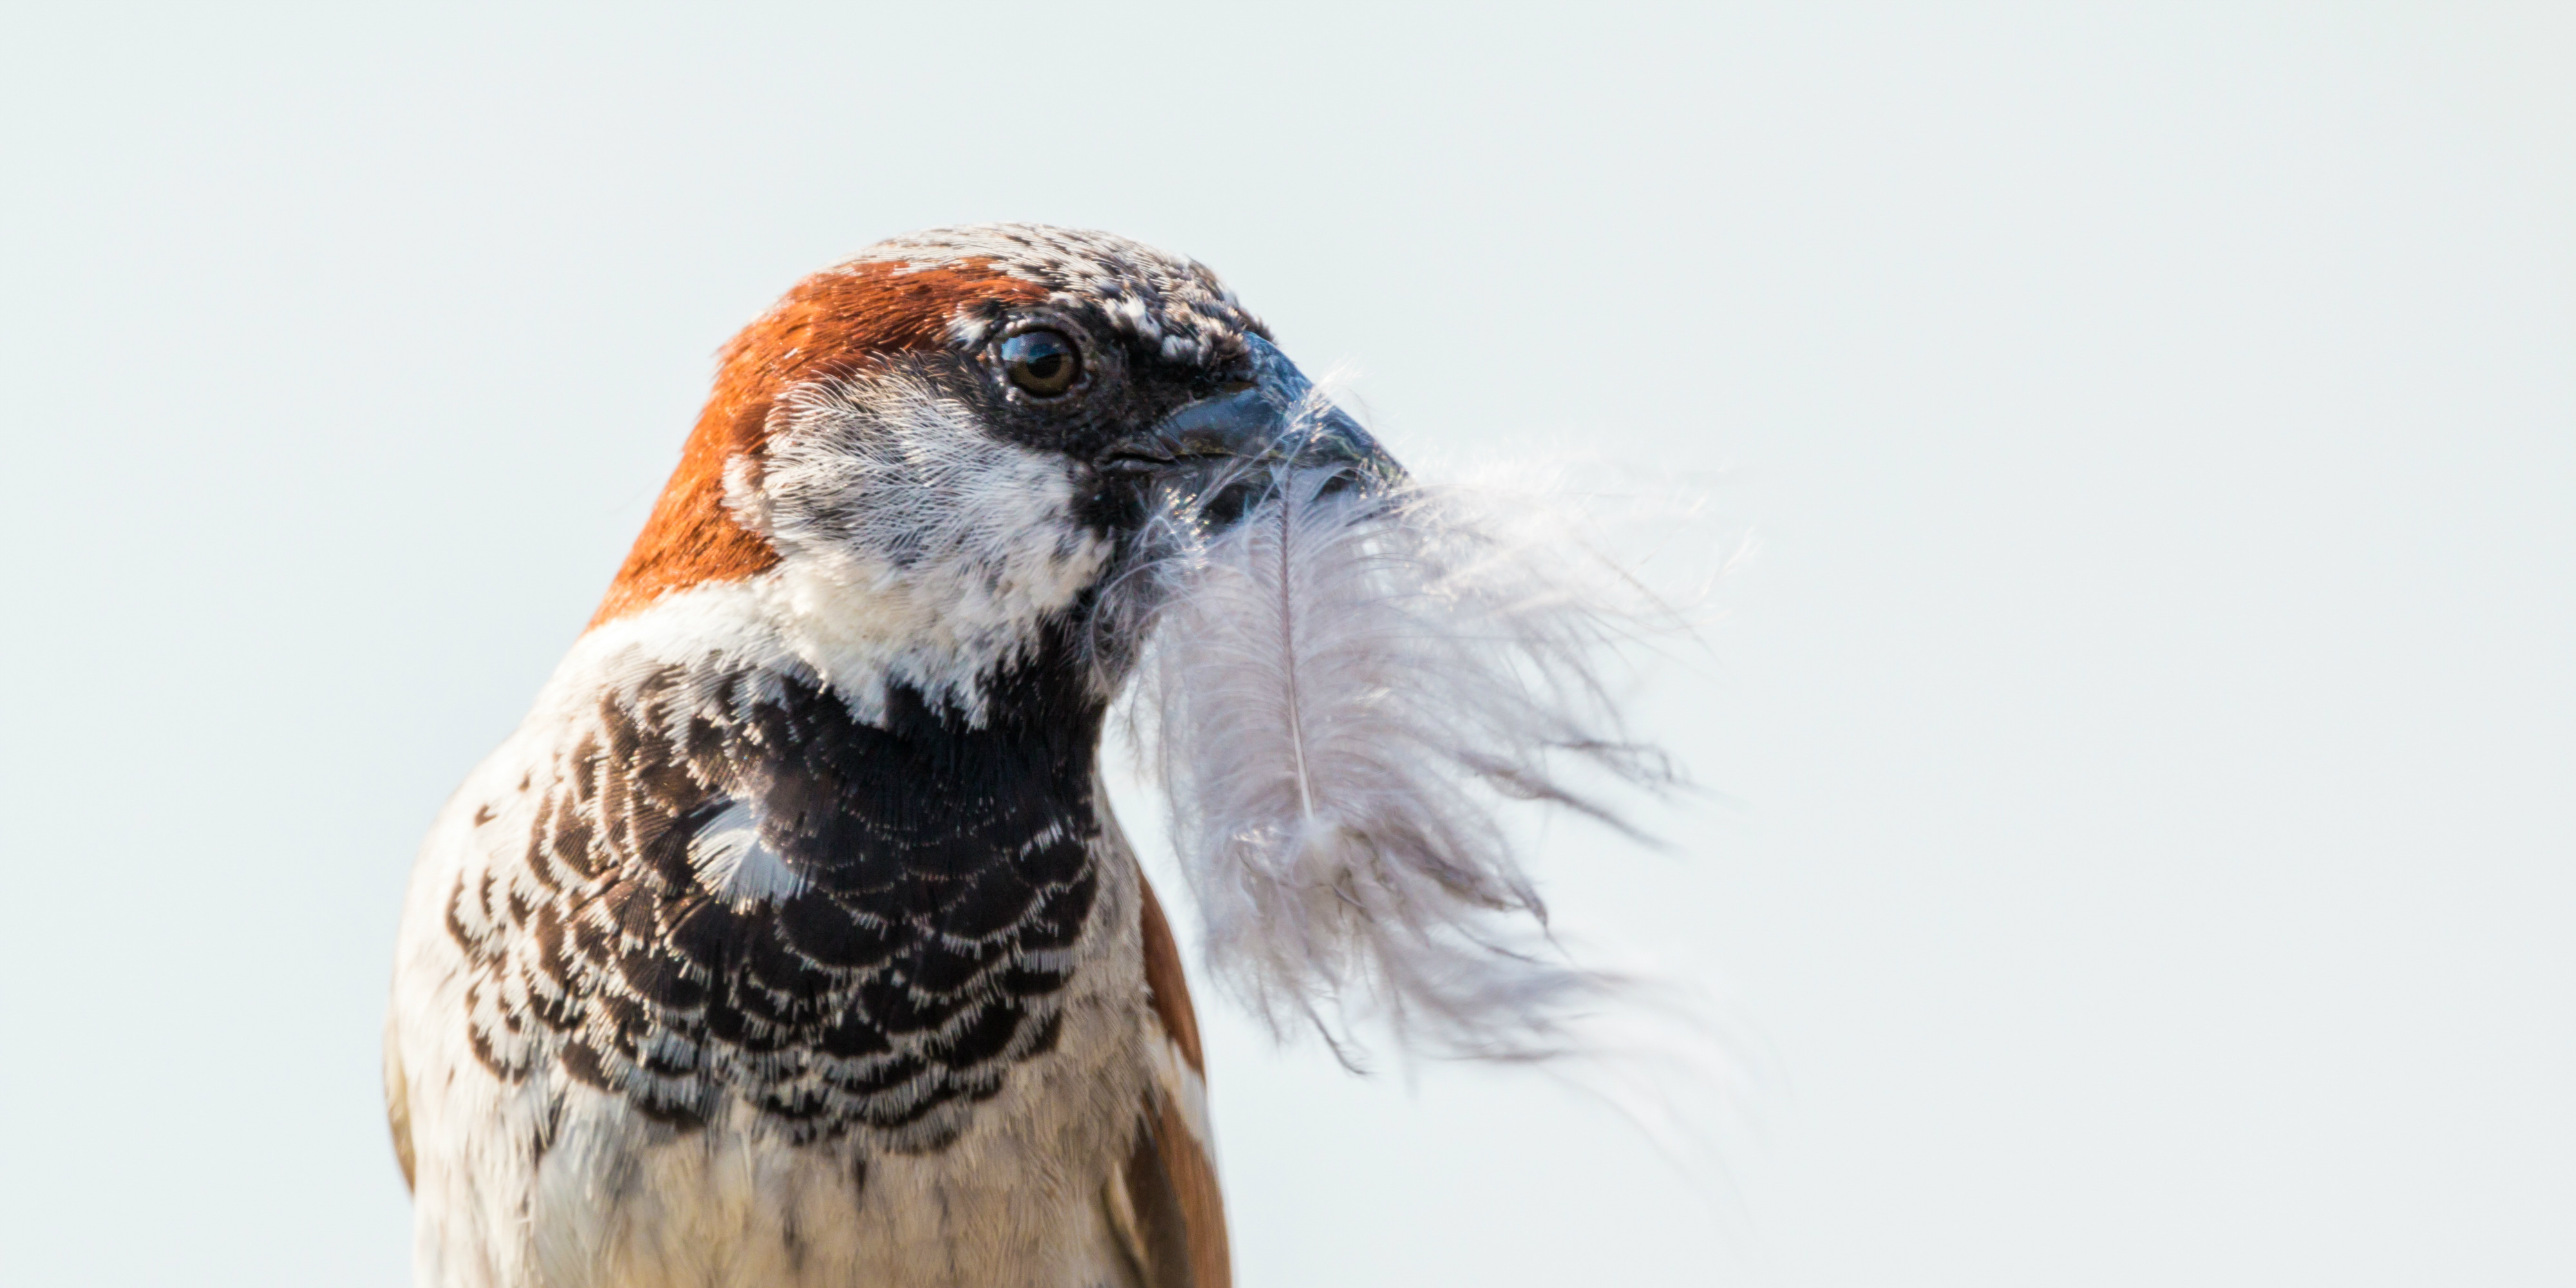 A bird collects feathers to provide insulation in its nest   eco-friendly tourism.